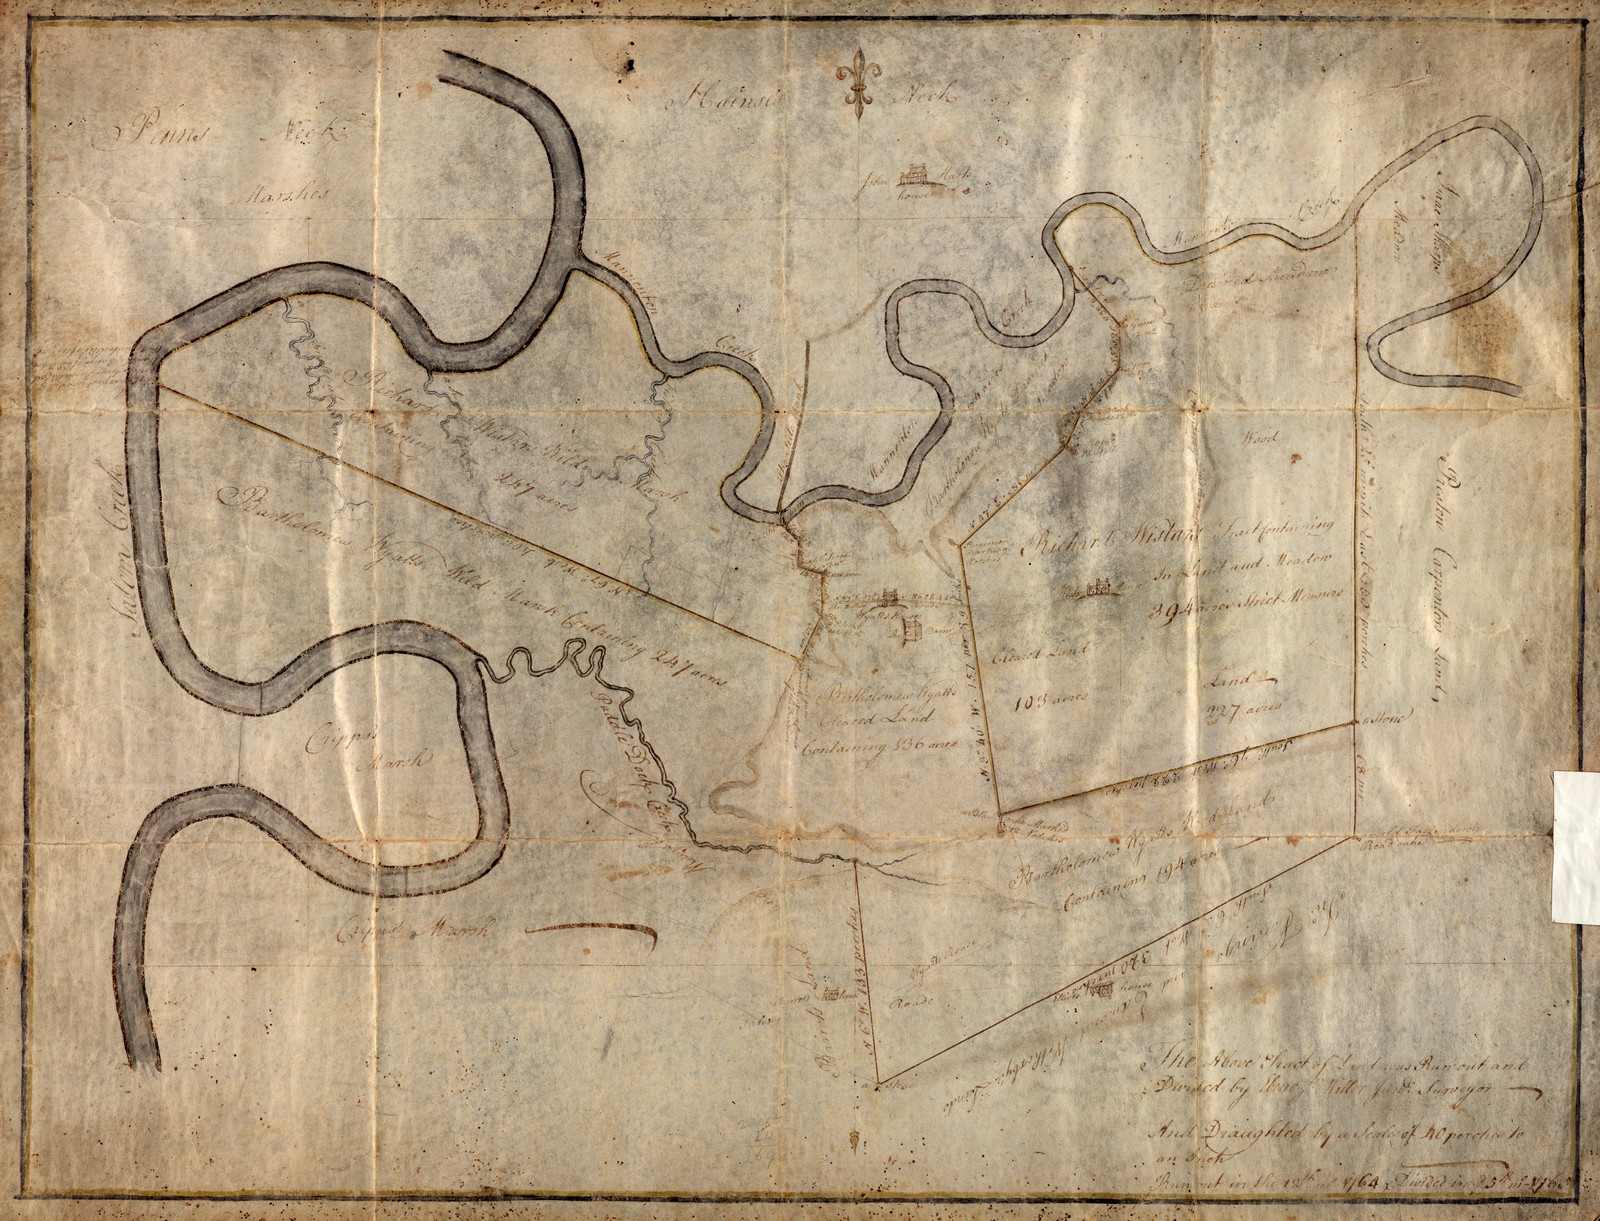 1765 survey of division of lands between bartholomew wyatt jr and richard wistar the salem river winds on the left and mannington creek at the top